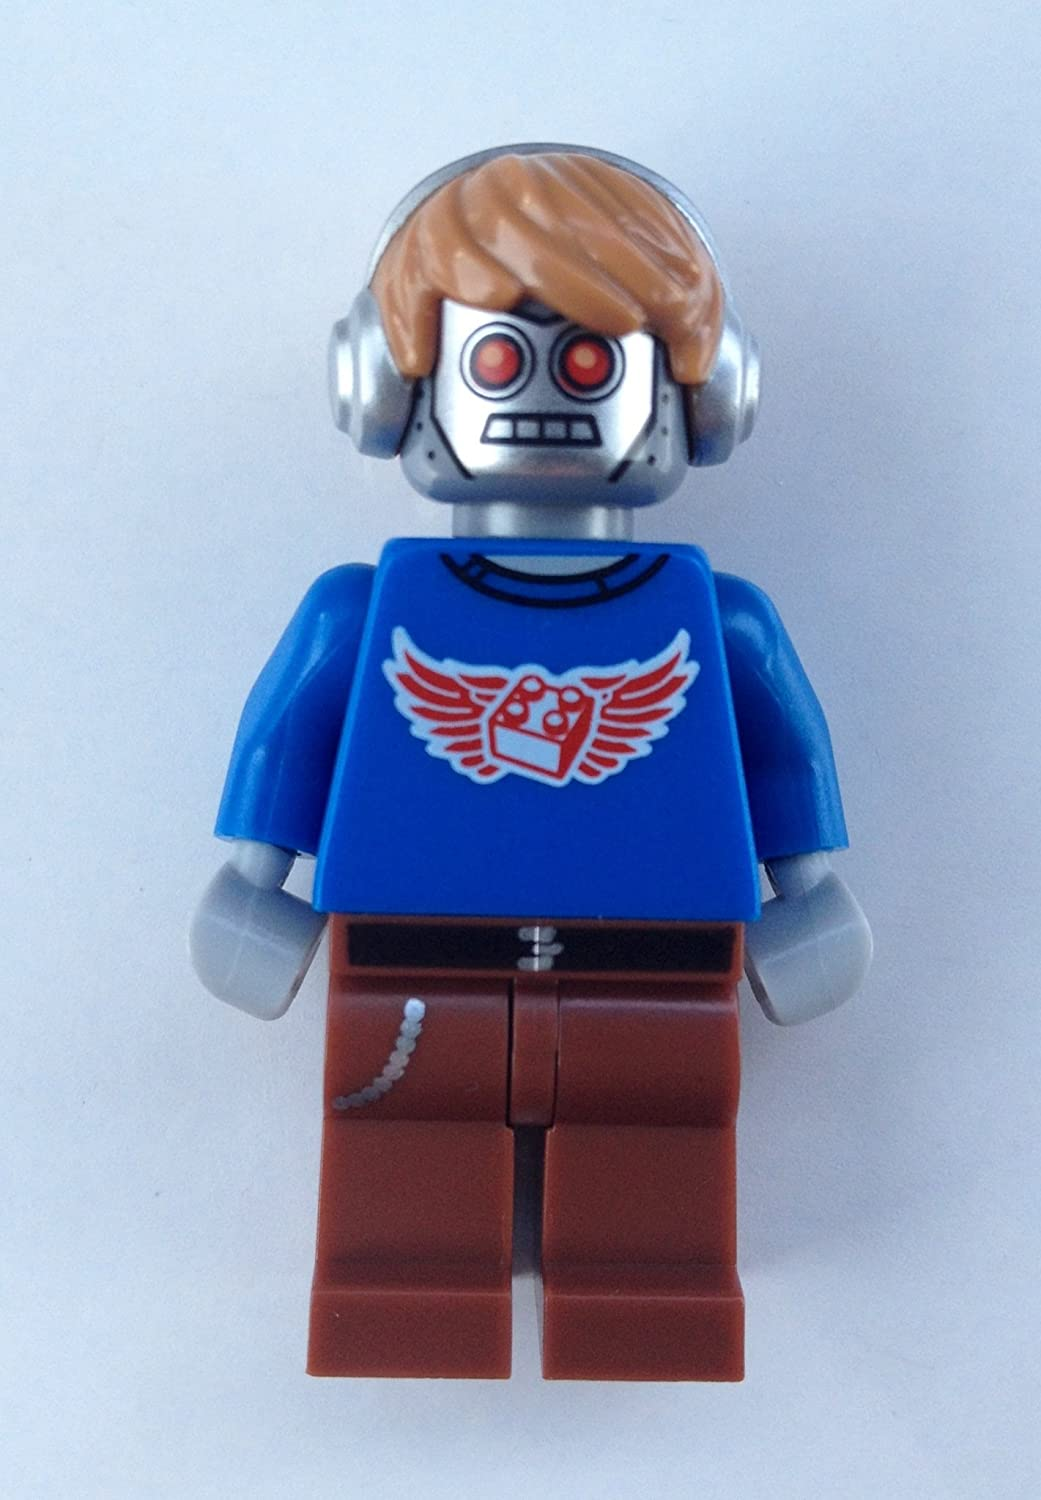 Lego Movie Exclusive Limited Edition Minifigure - Radio DJ Robot (5002203)